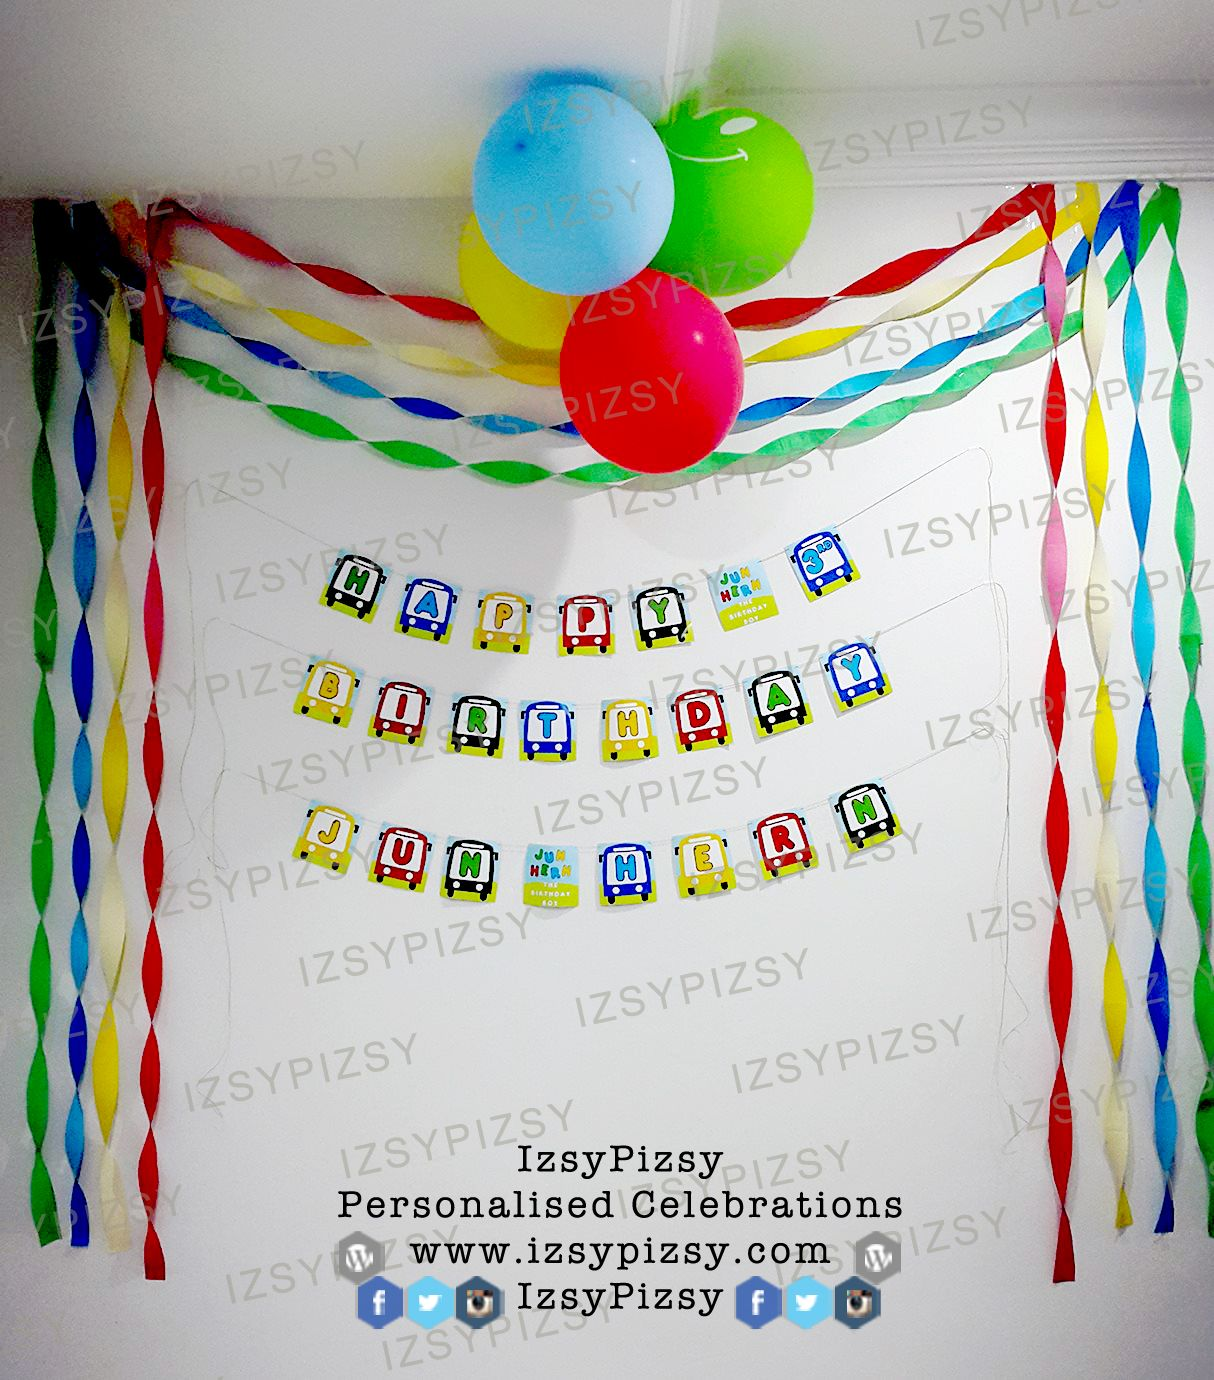 Printable airplane party backdrops party decorations diy template - Birthday Party Ideas